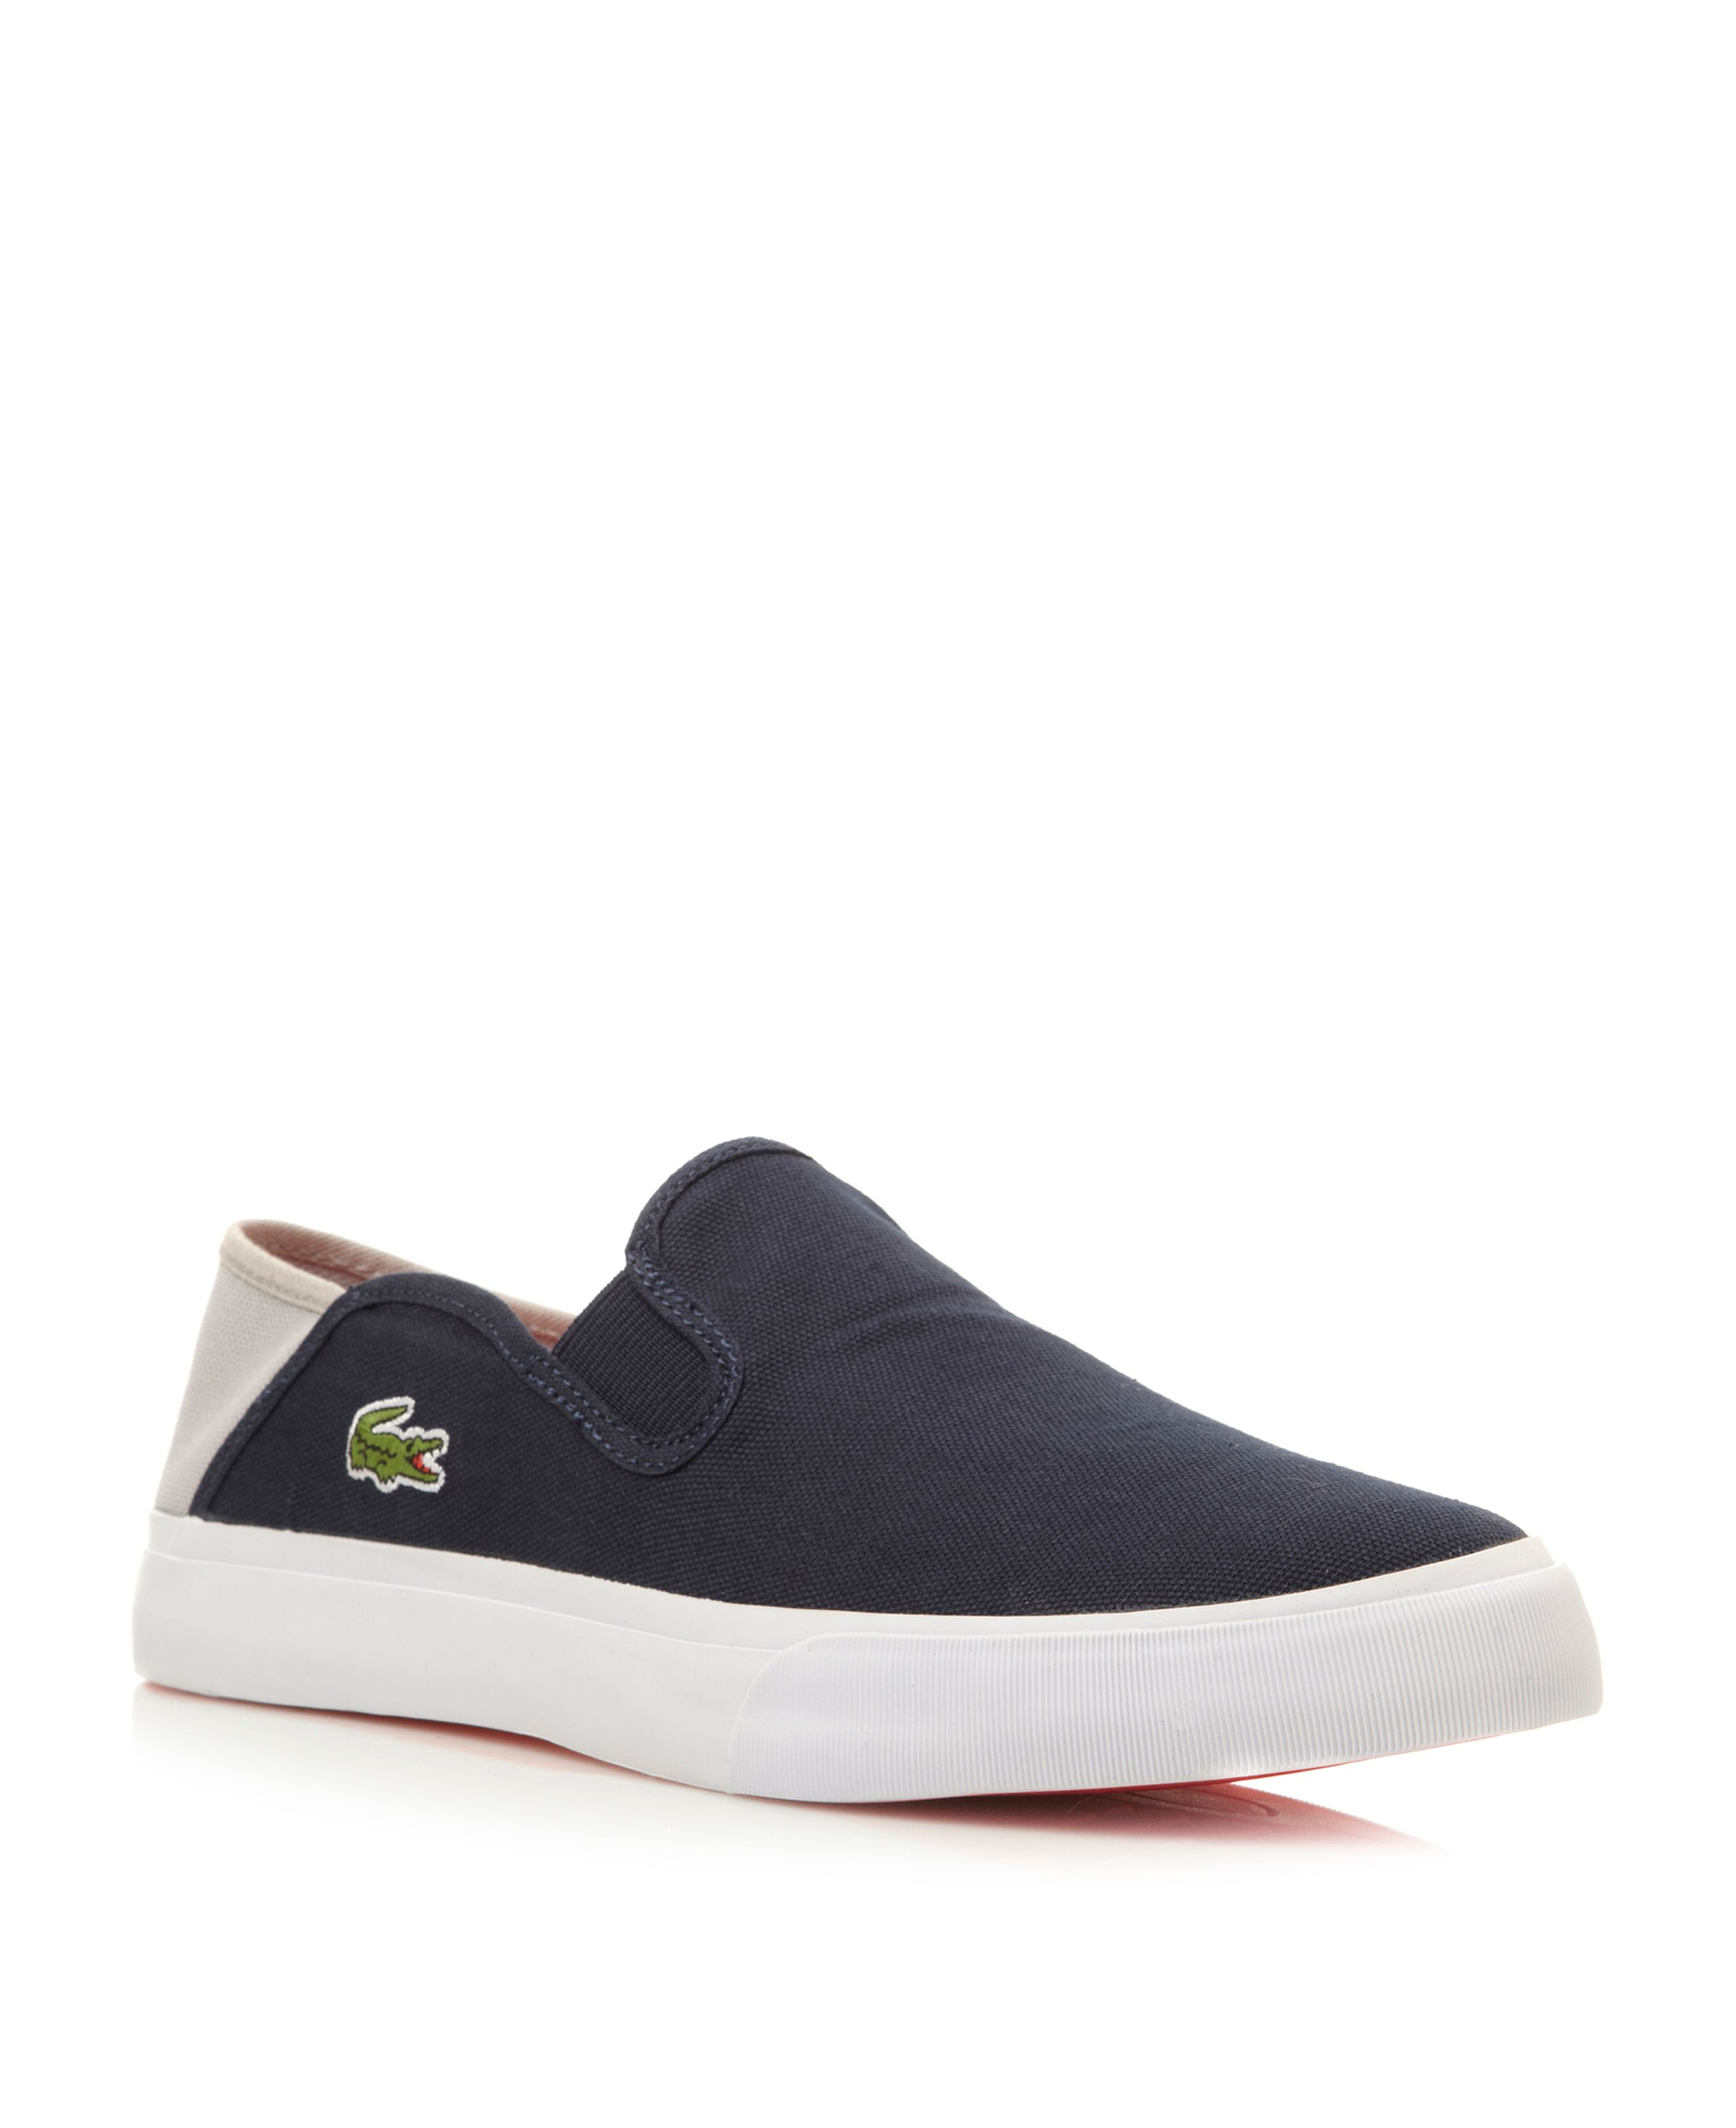 Bellevue contrast slip on casual shoes